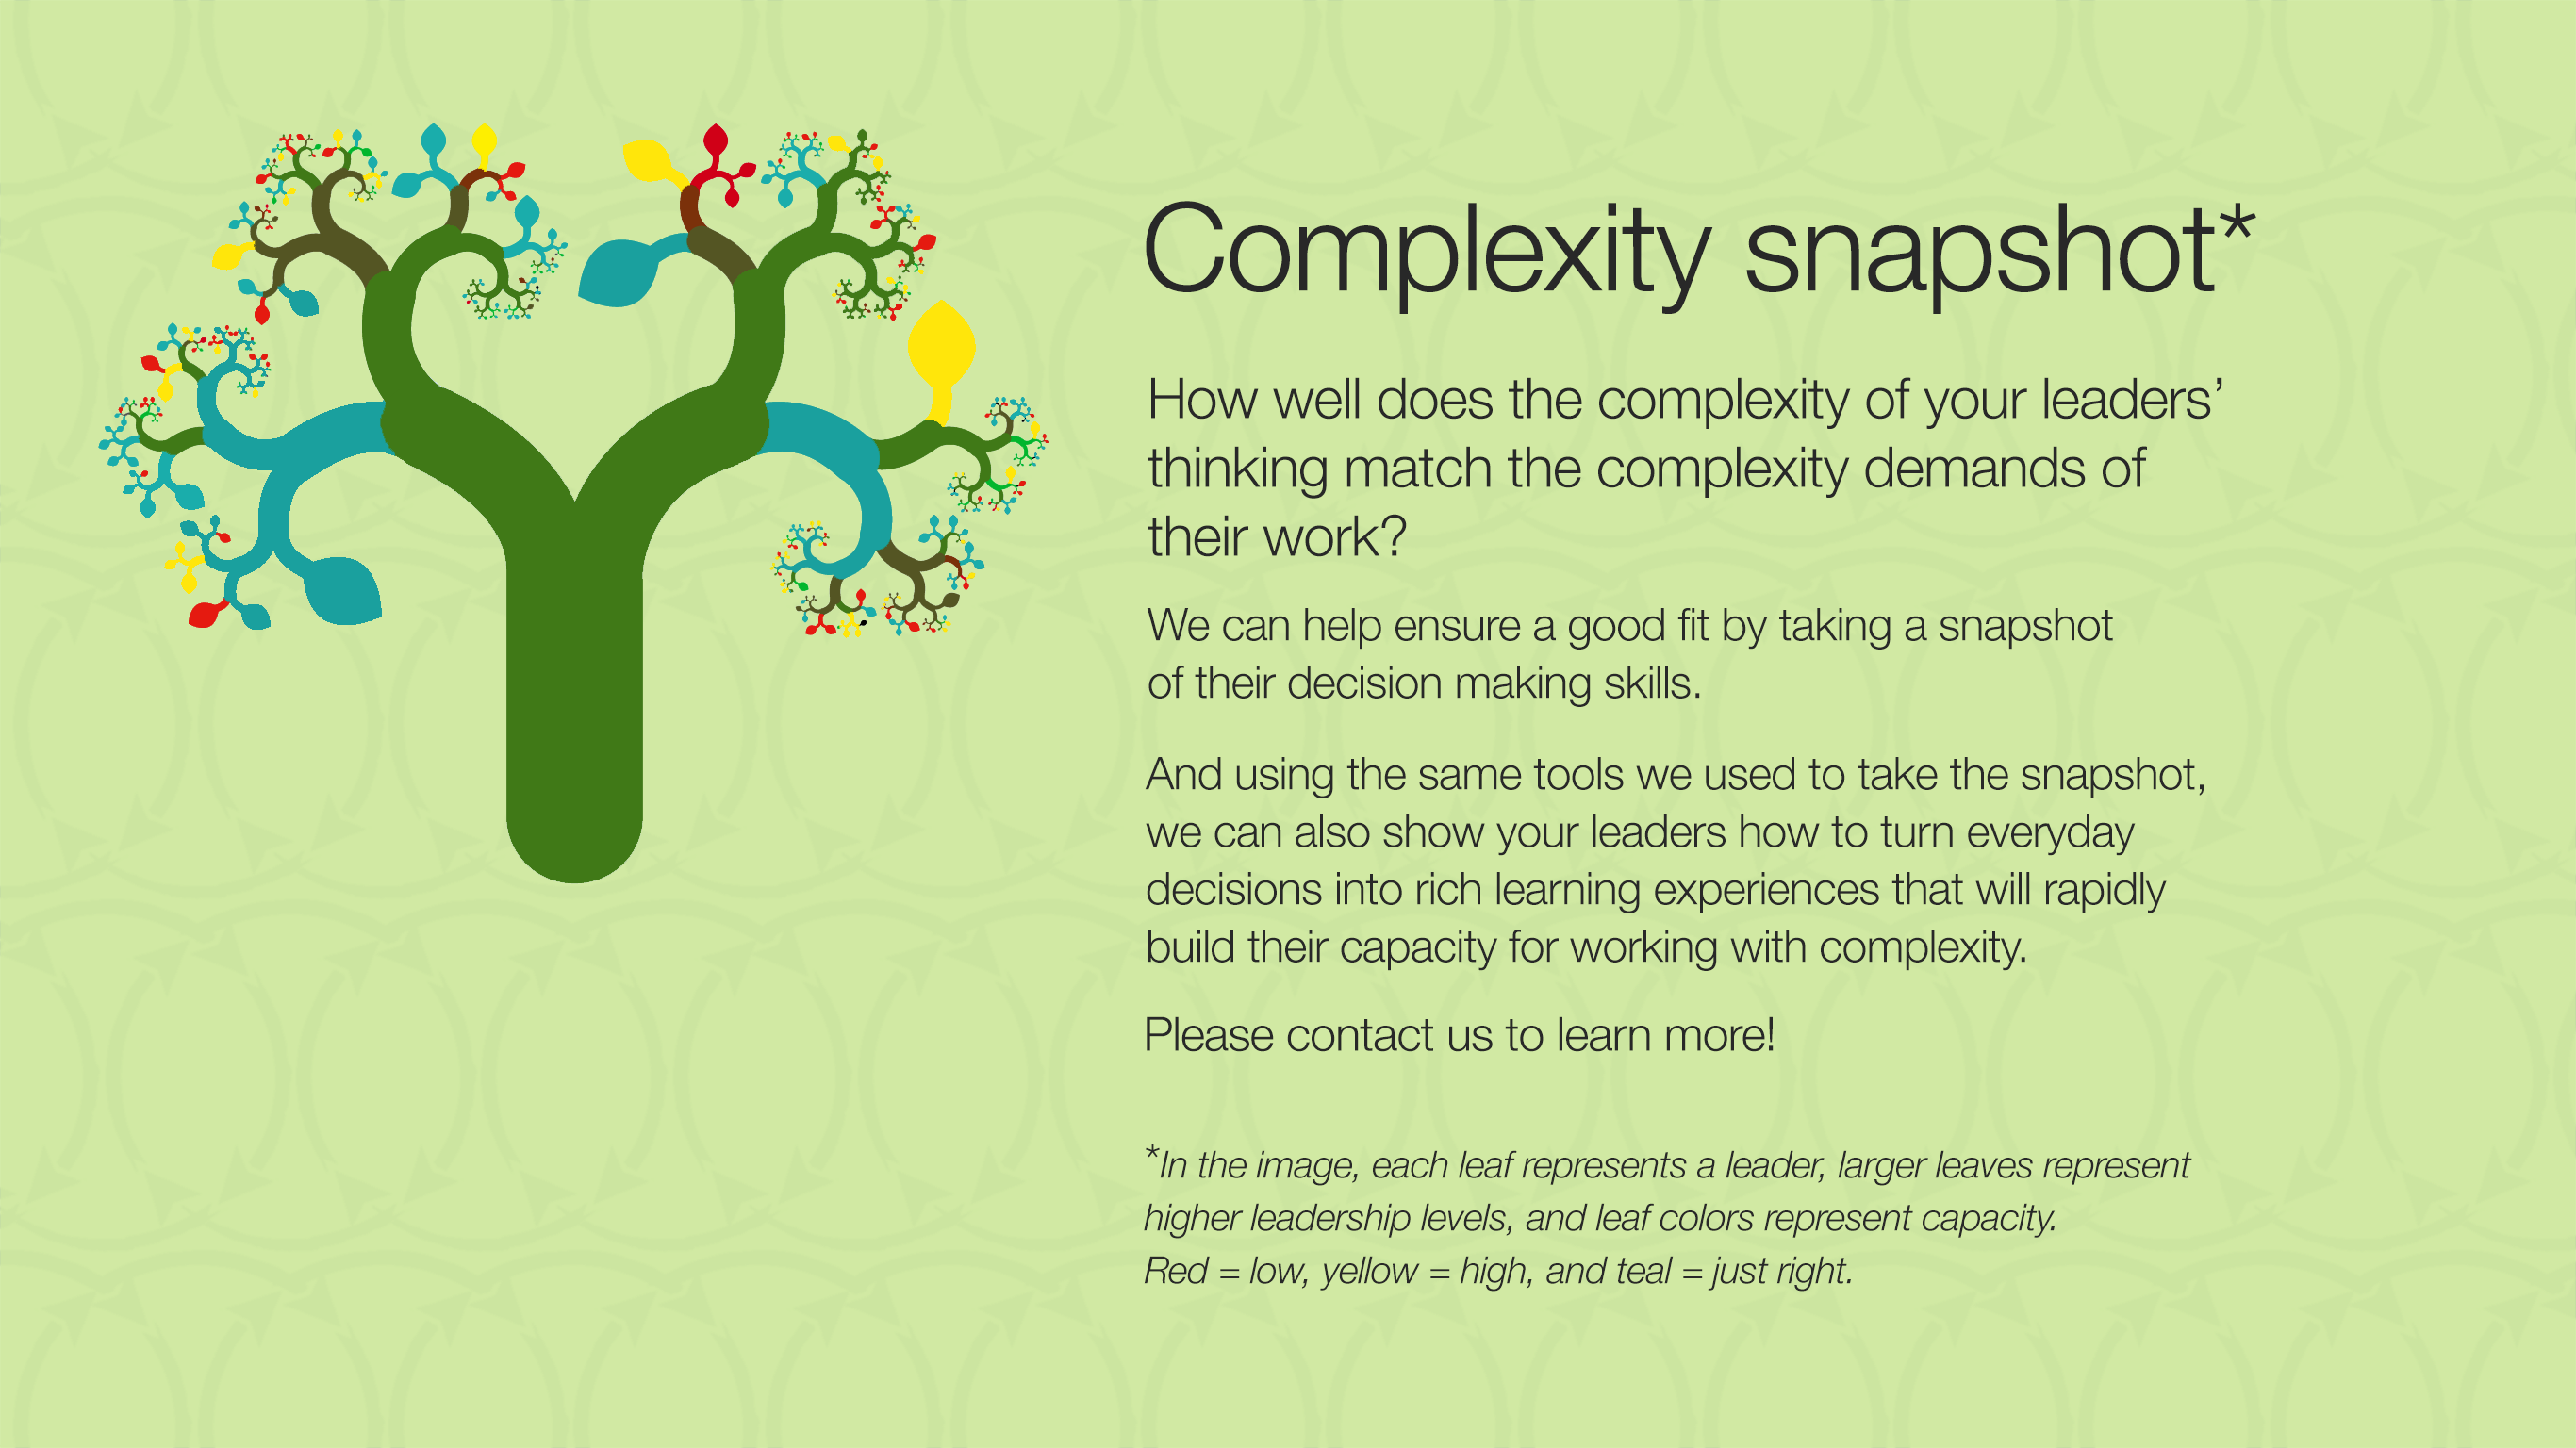 Complexity snapshot